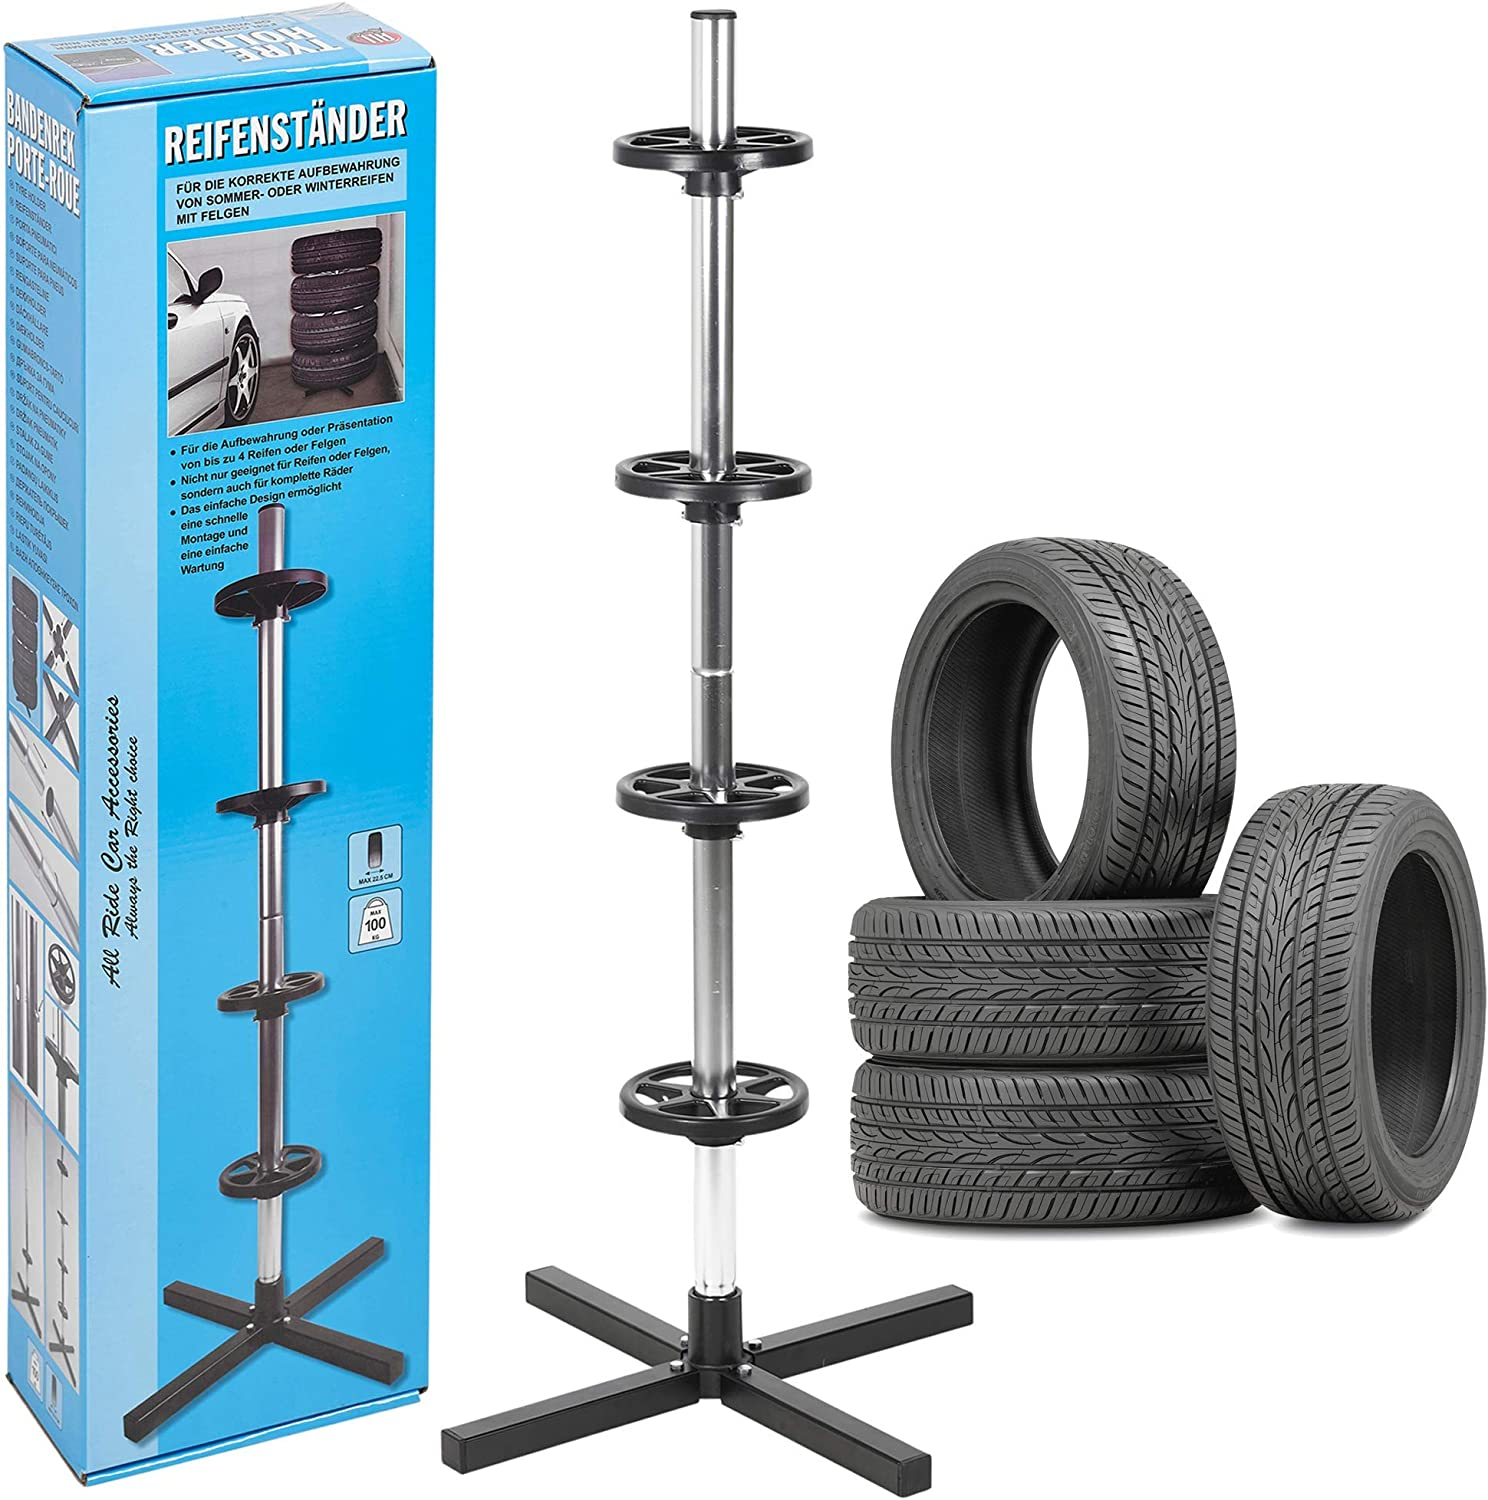 Holds up to 100kg 225 mm Tyre Size Room for 4 Tyres Wheel Tyre Tree Rack Stand